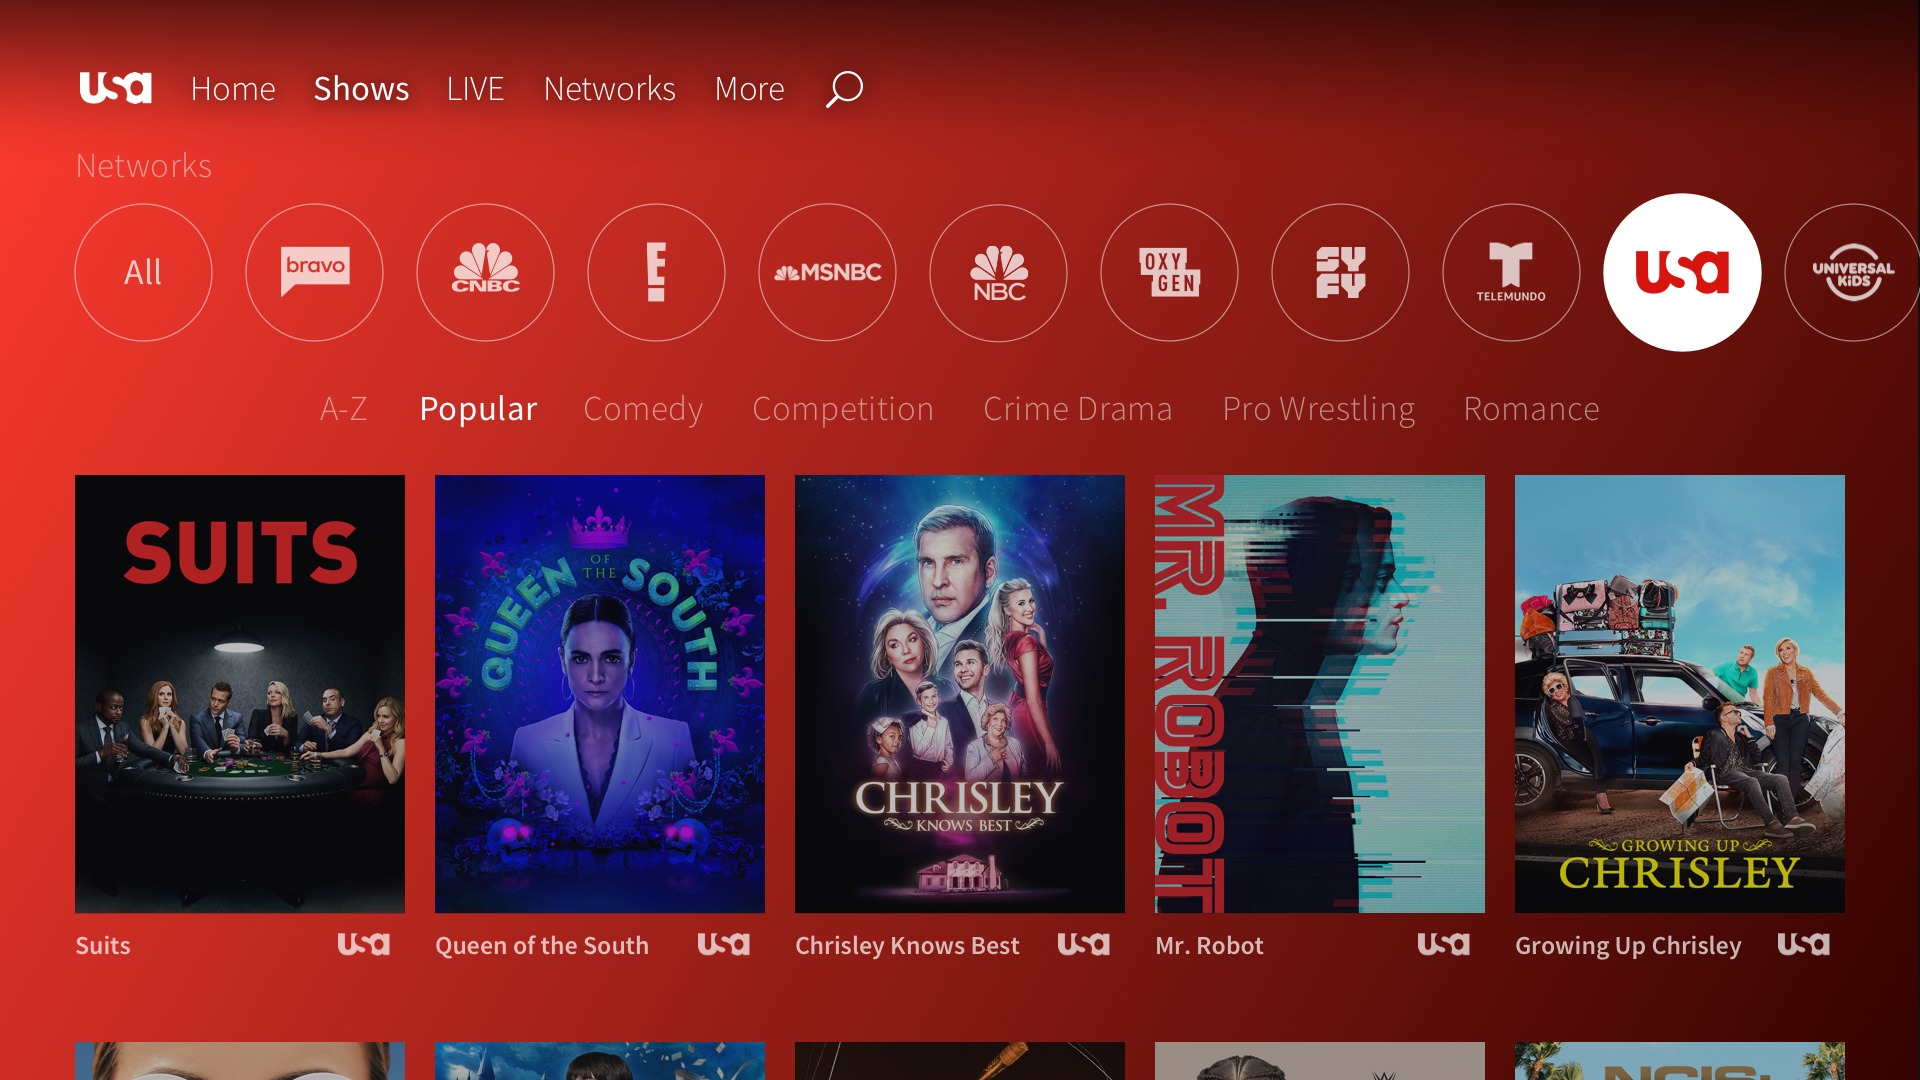 Android TV gets NBCUniversal apps w/ USA Network, more - 9to5Google